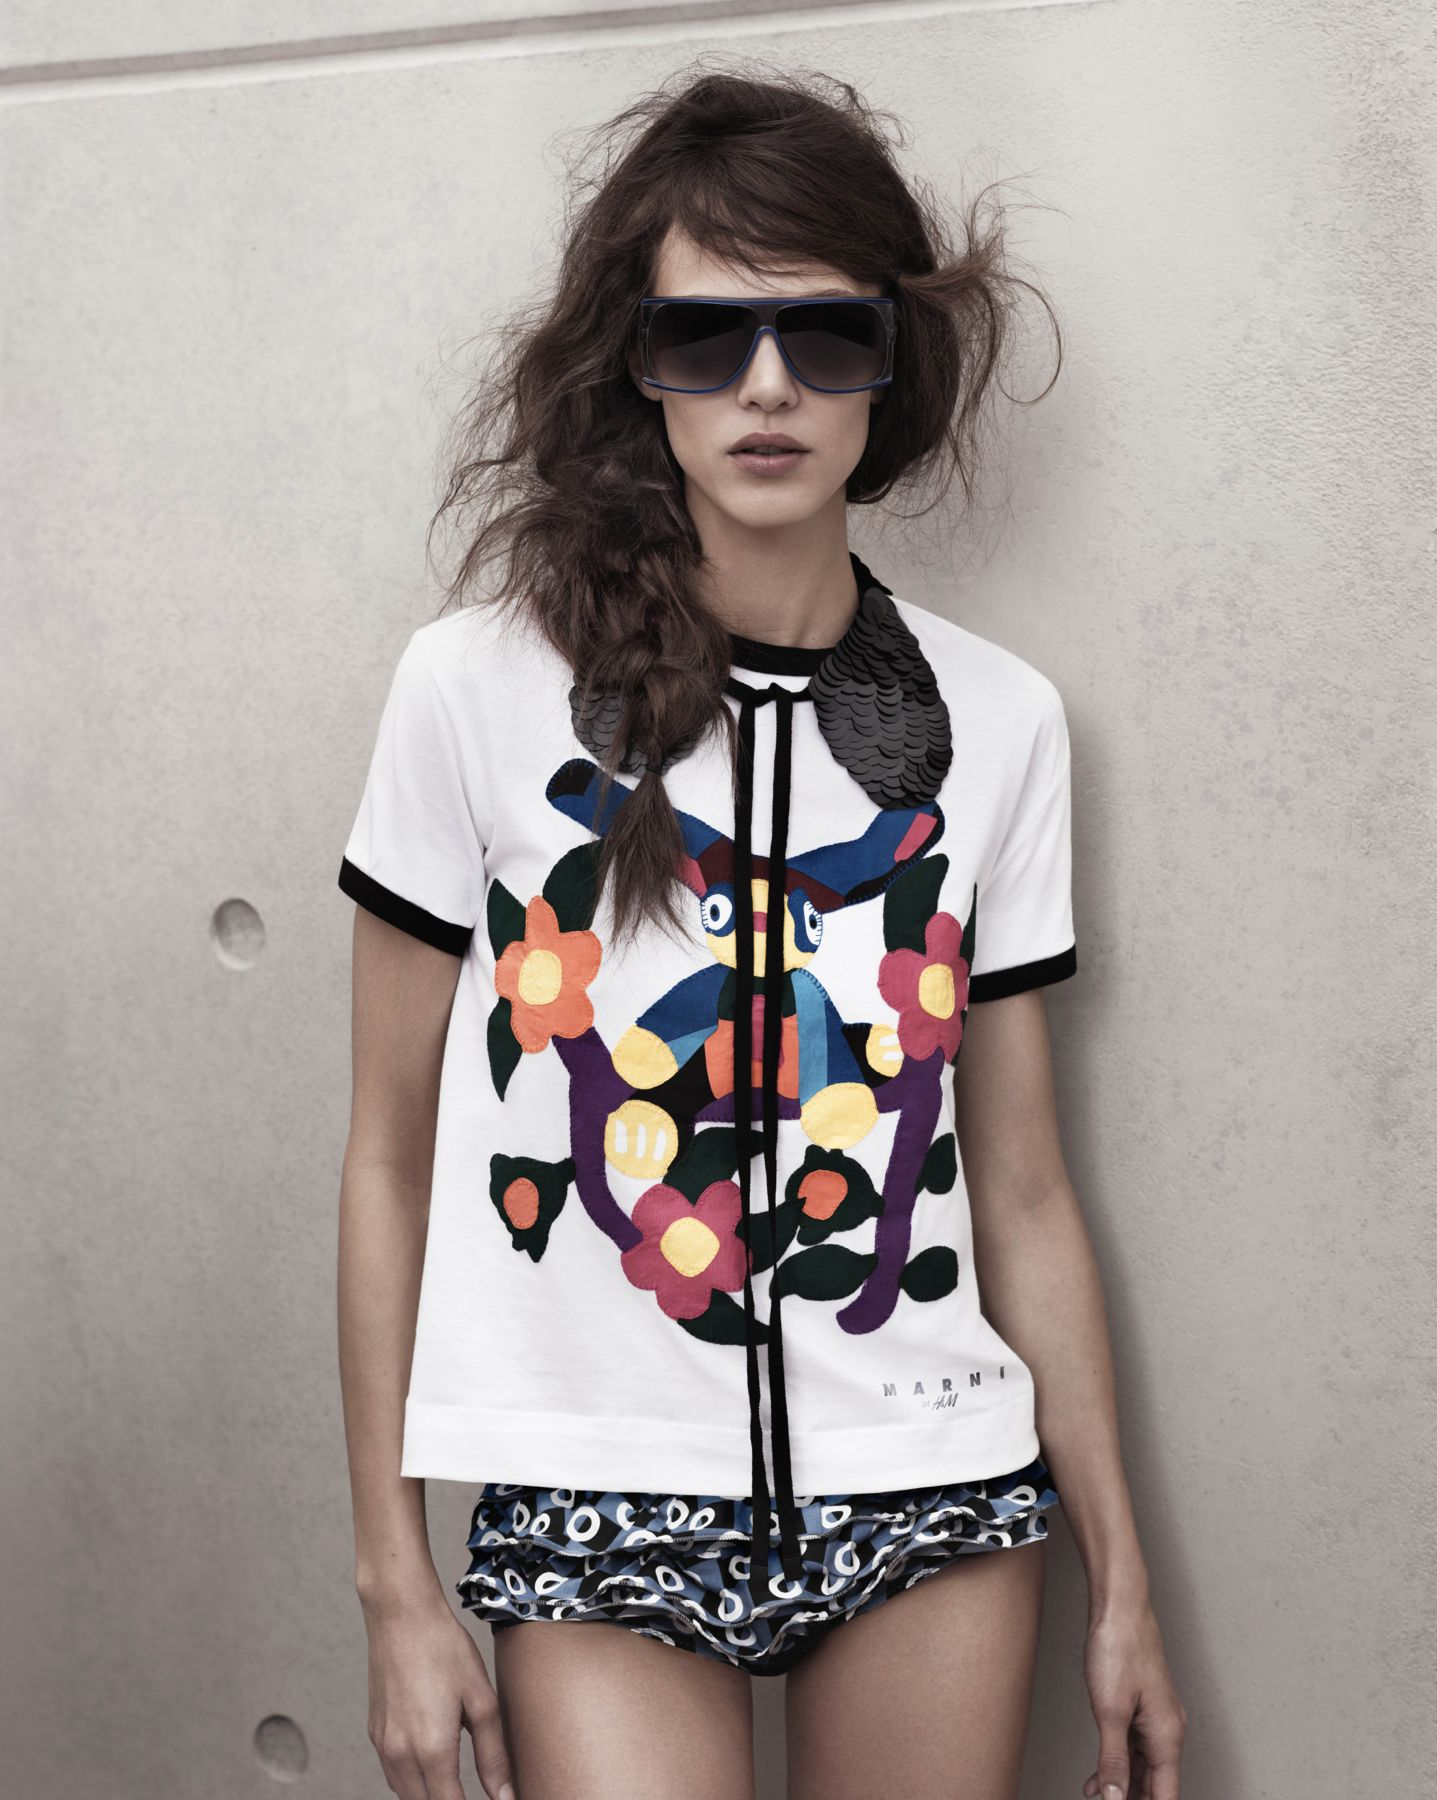 Marni for H&M Woman Collection 2012